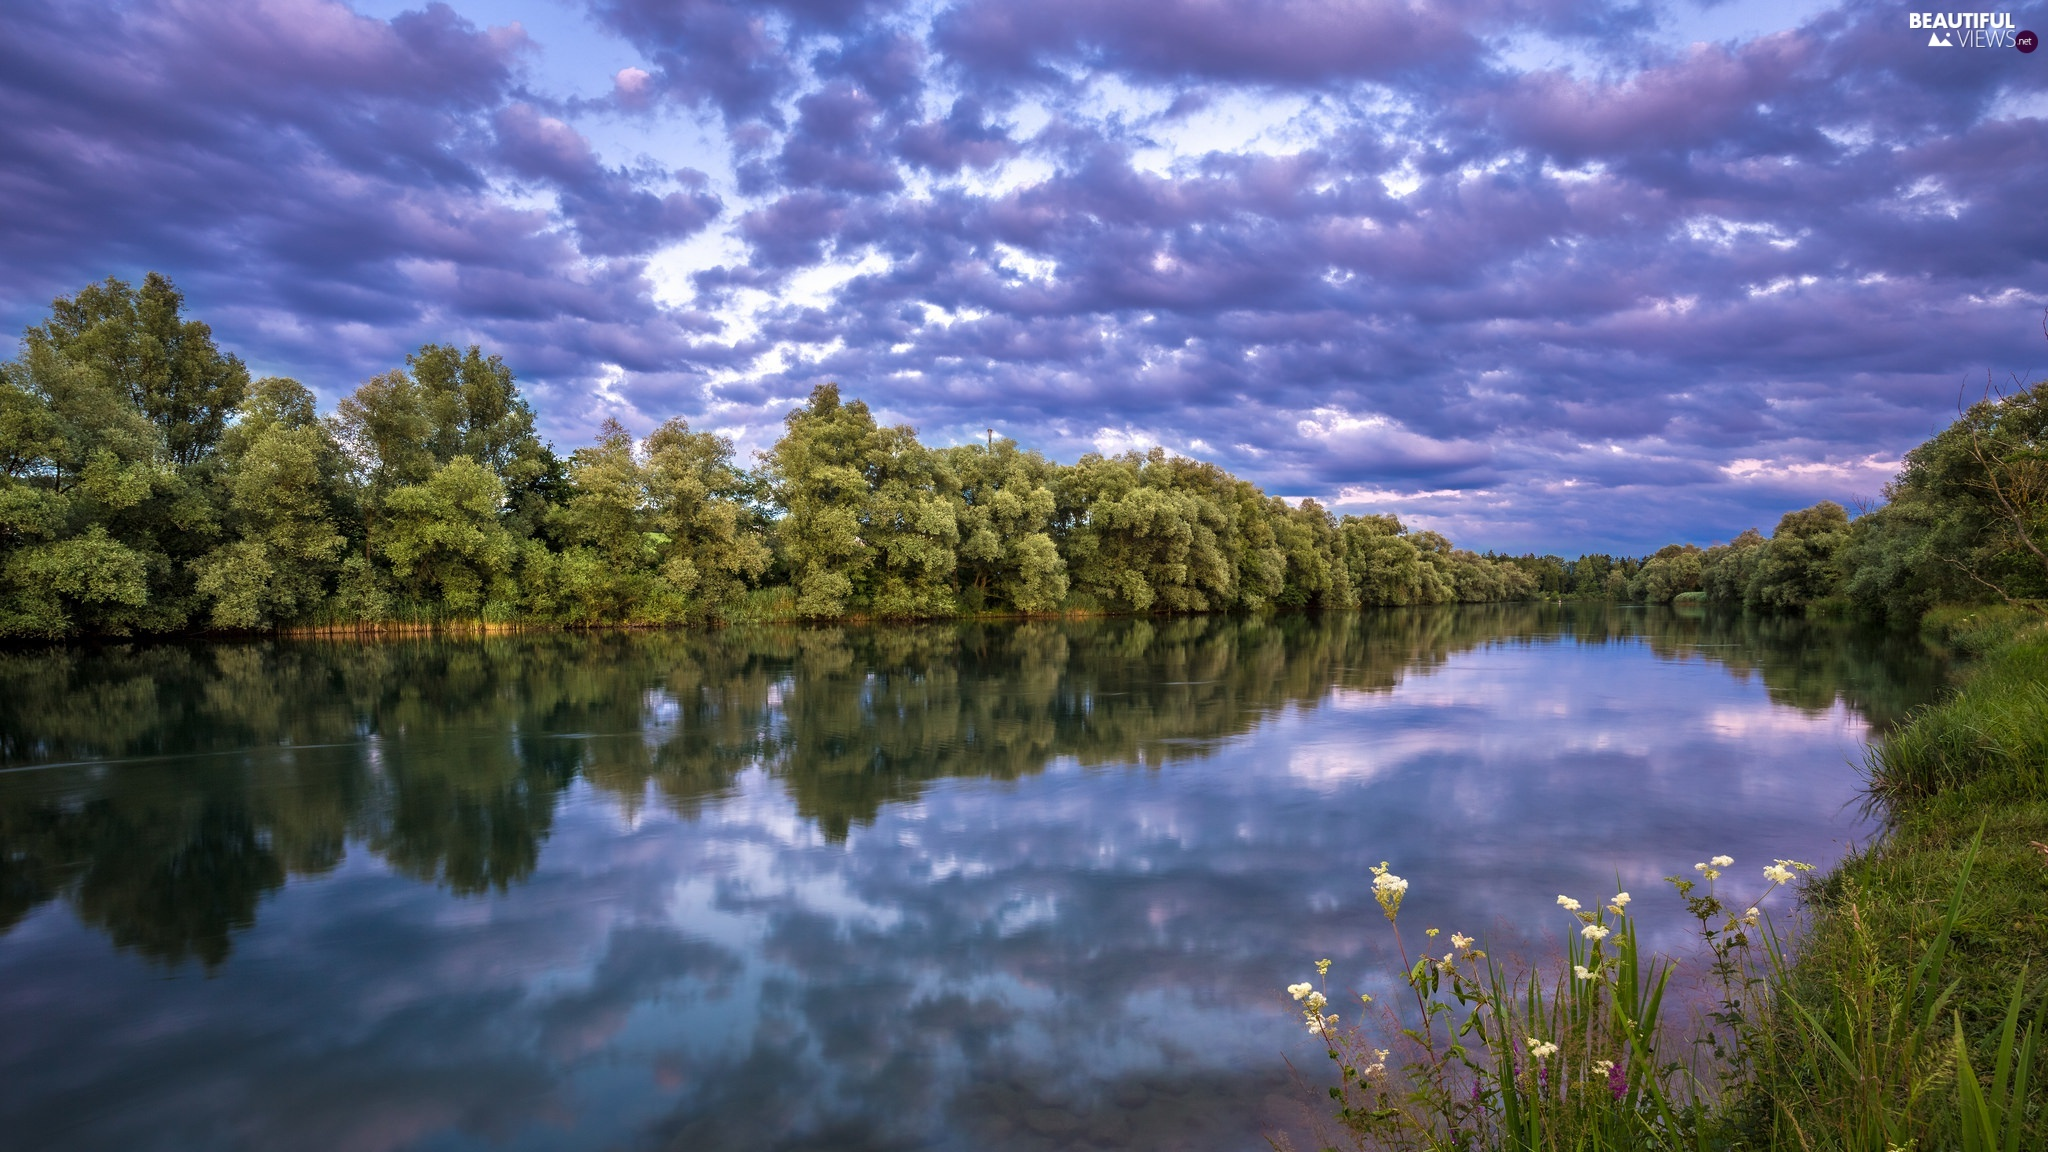 viewes, River, clouds, reflection, Sky, trees